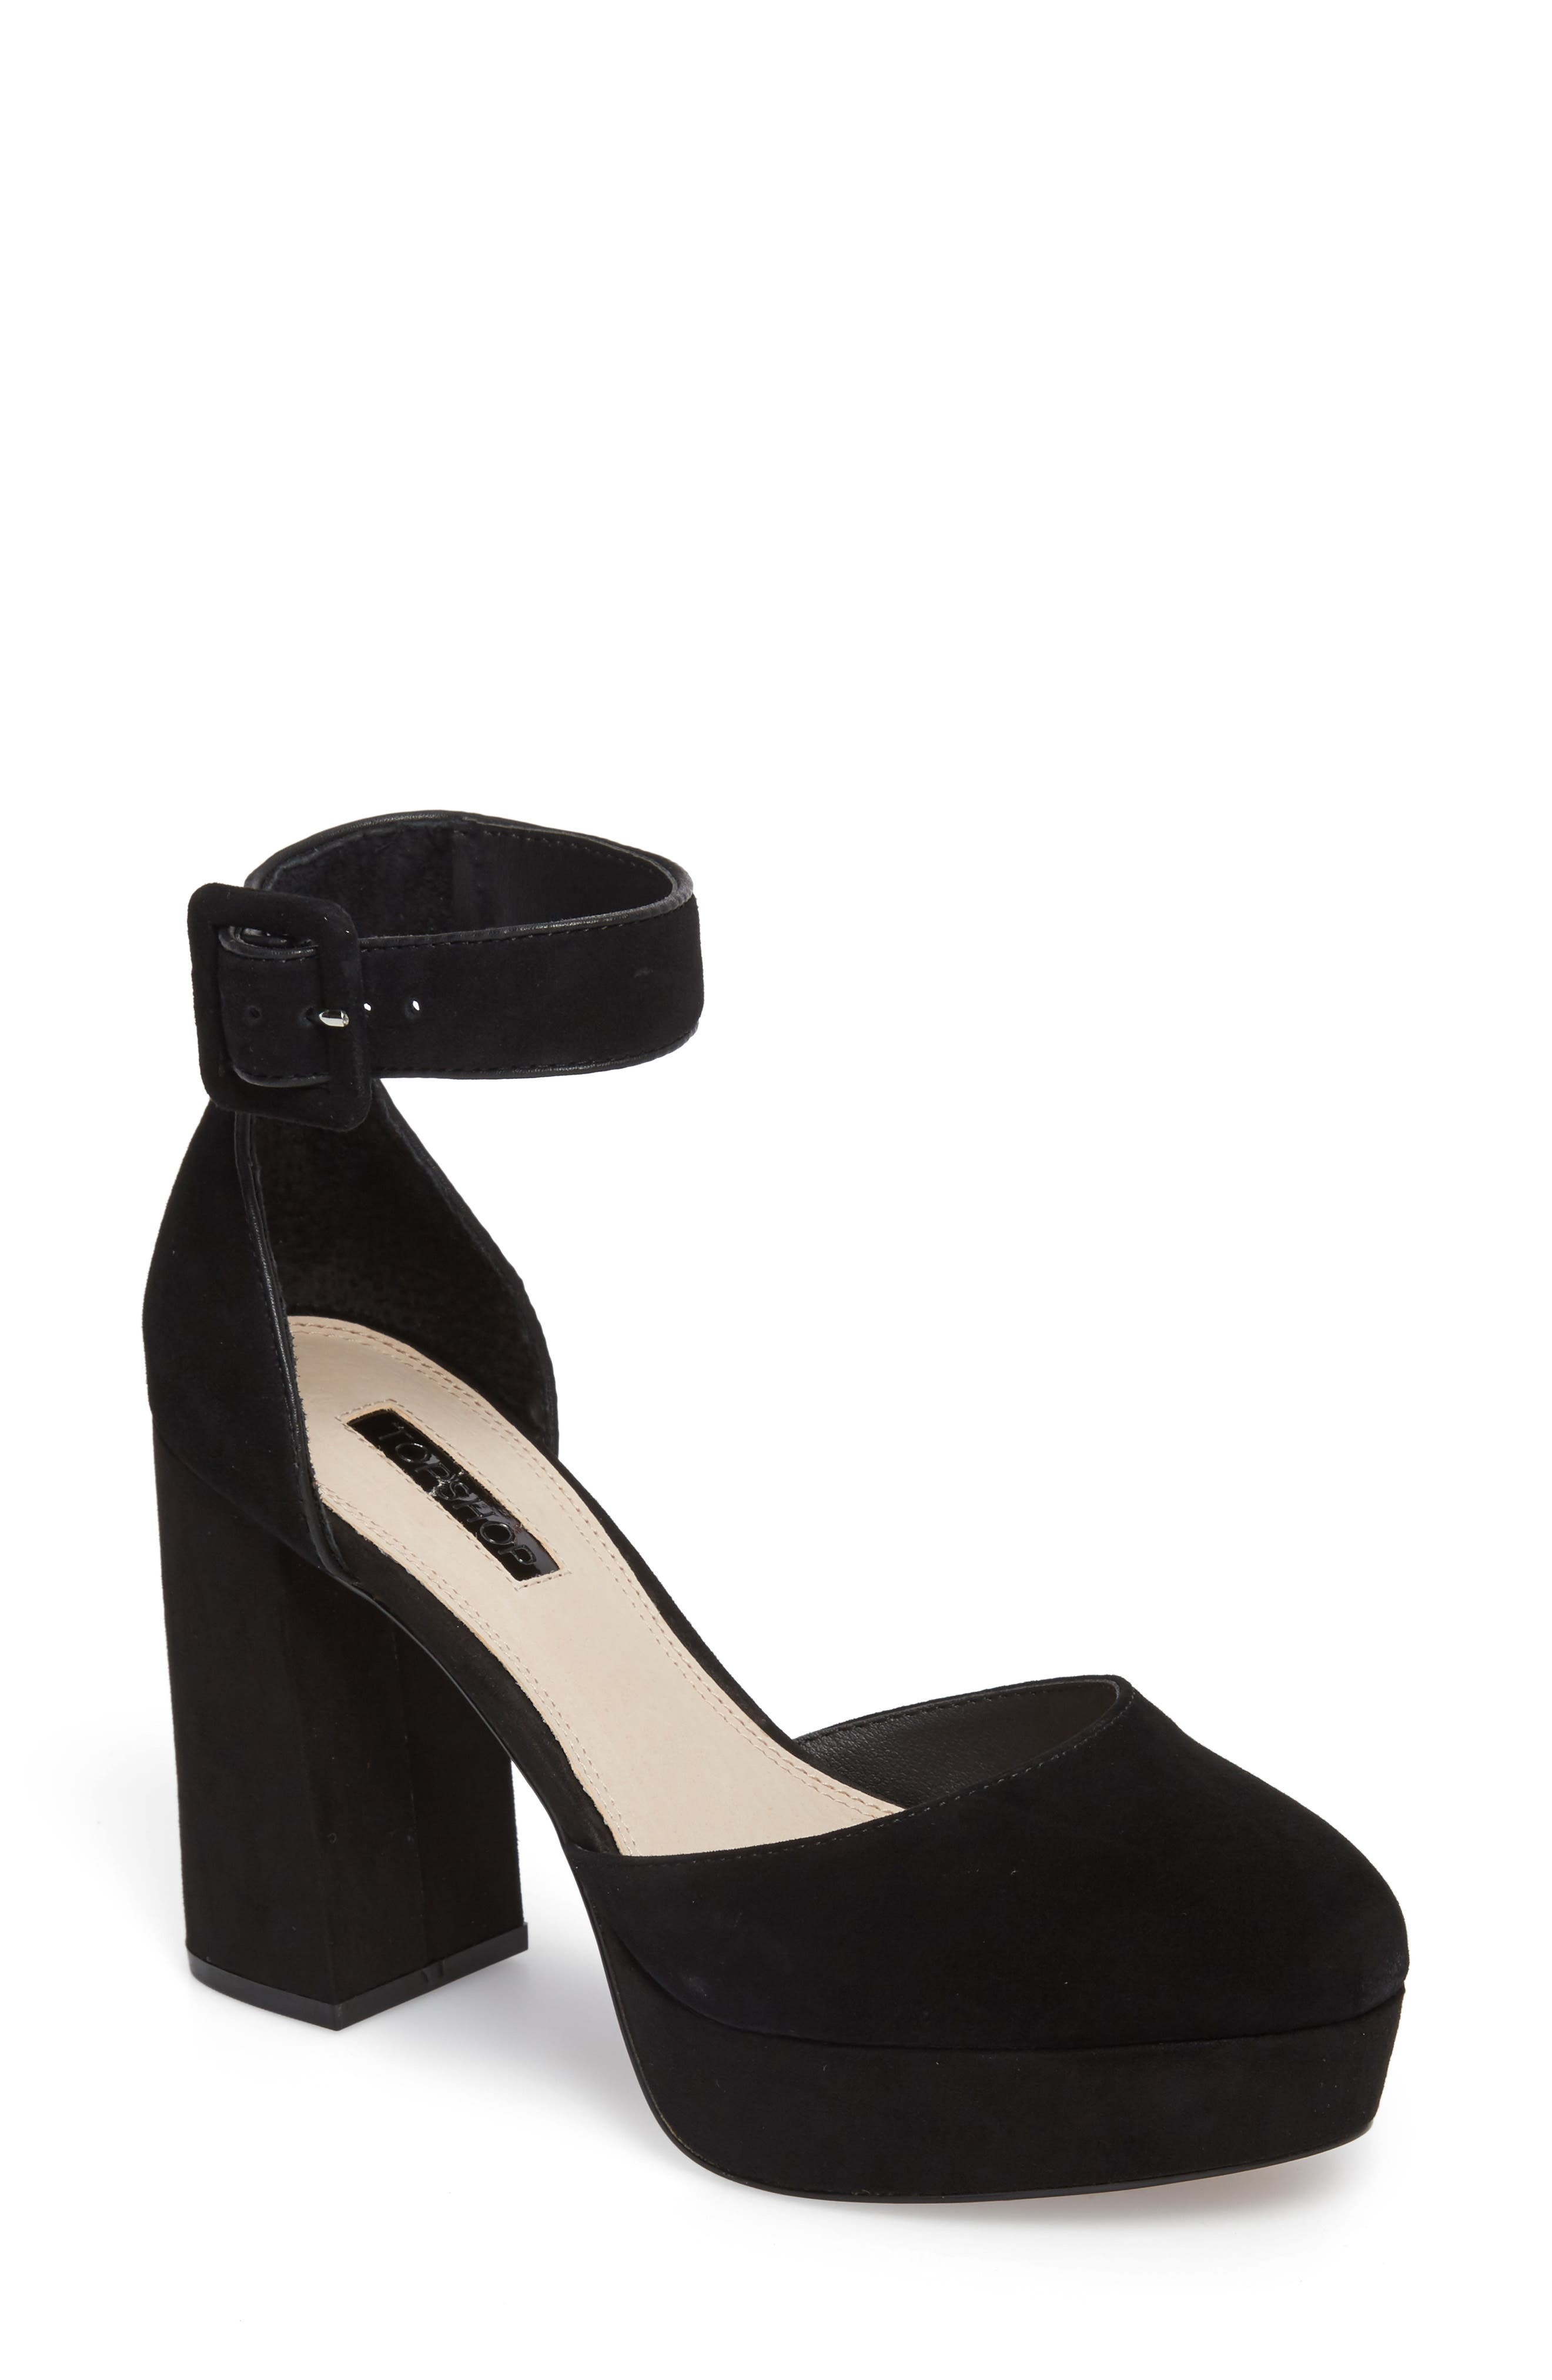 Ankle Strap Platform Sandal,                             Main thumbnail 1, color,                             001